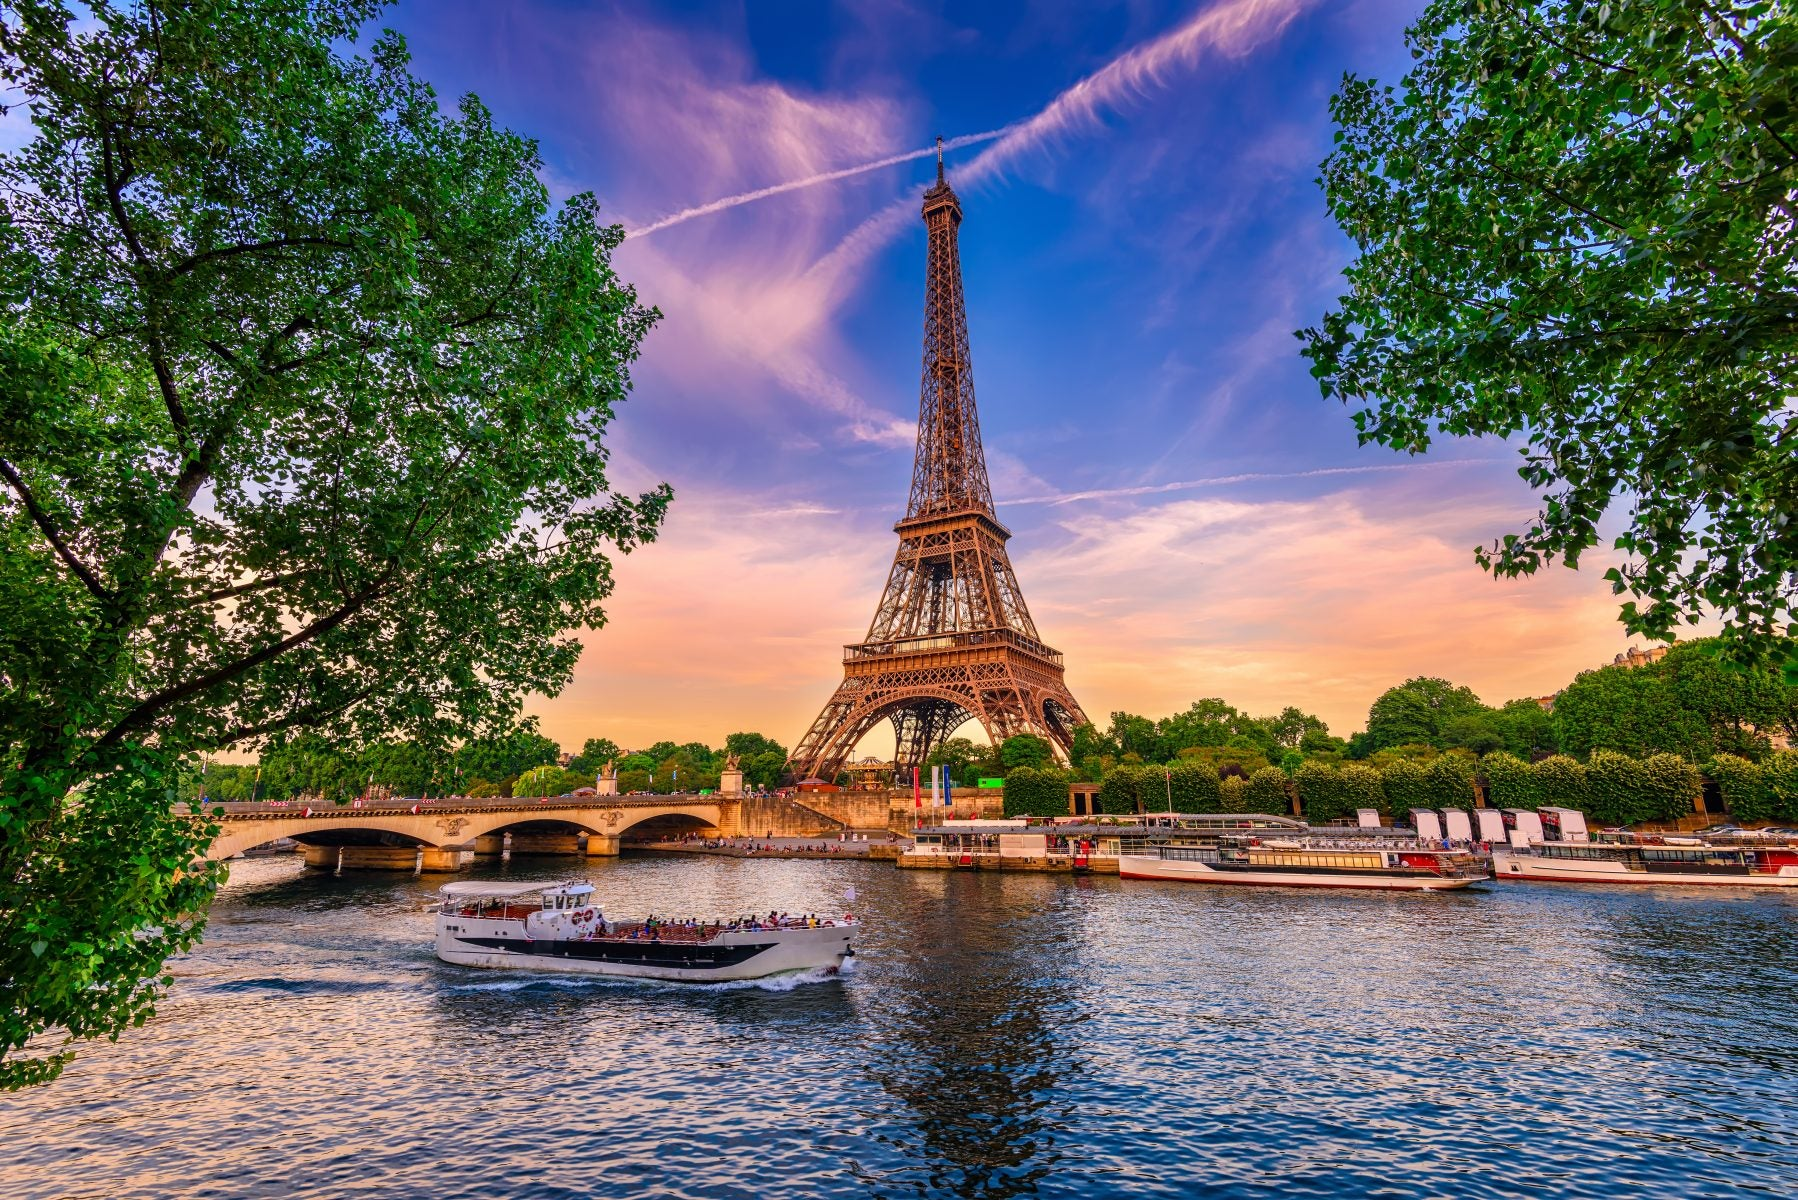 The Eiffel Tower as seen from Across the Seine River